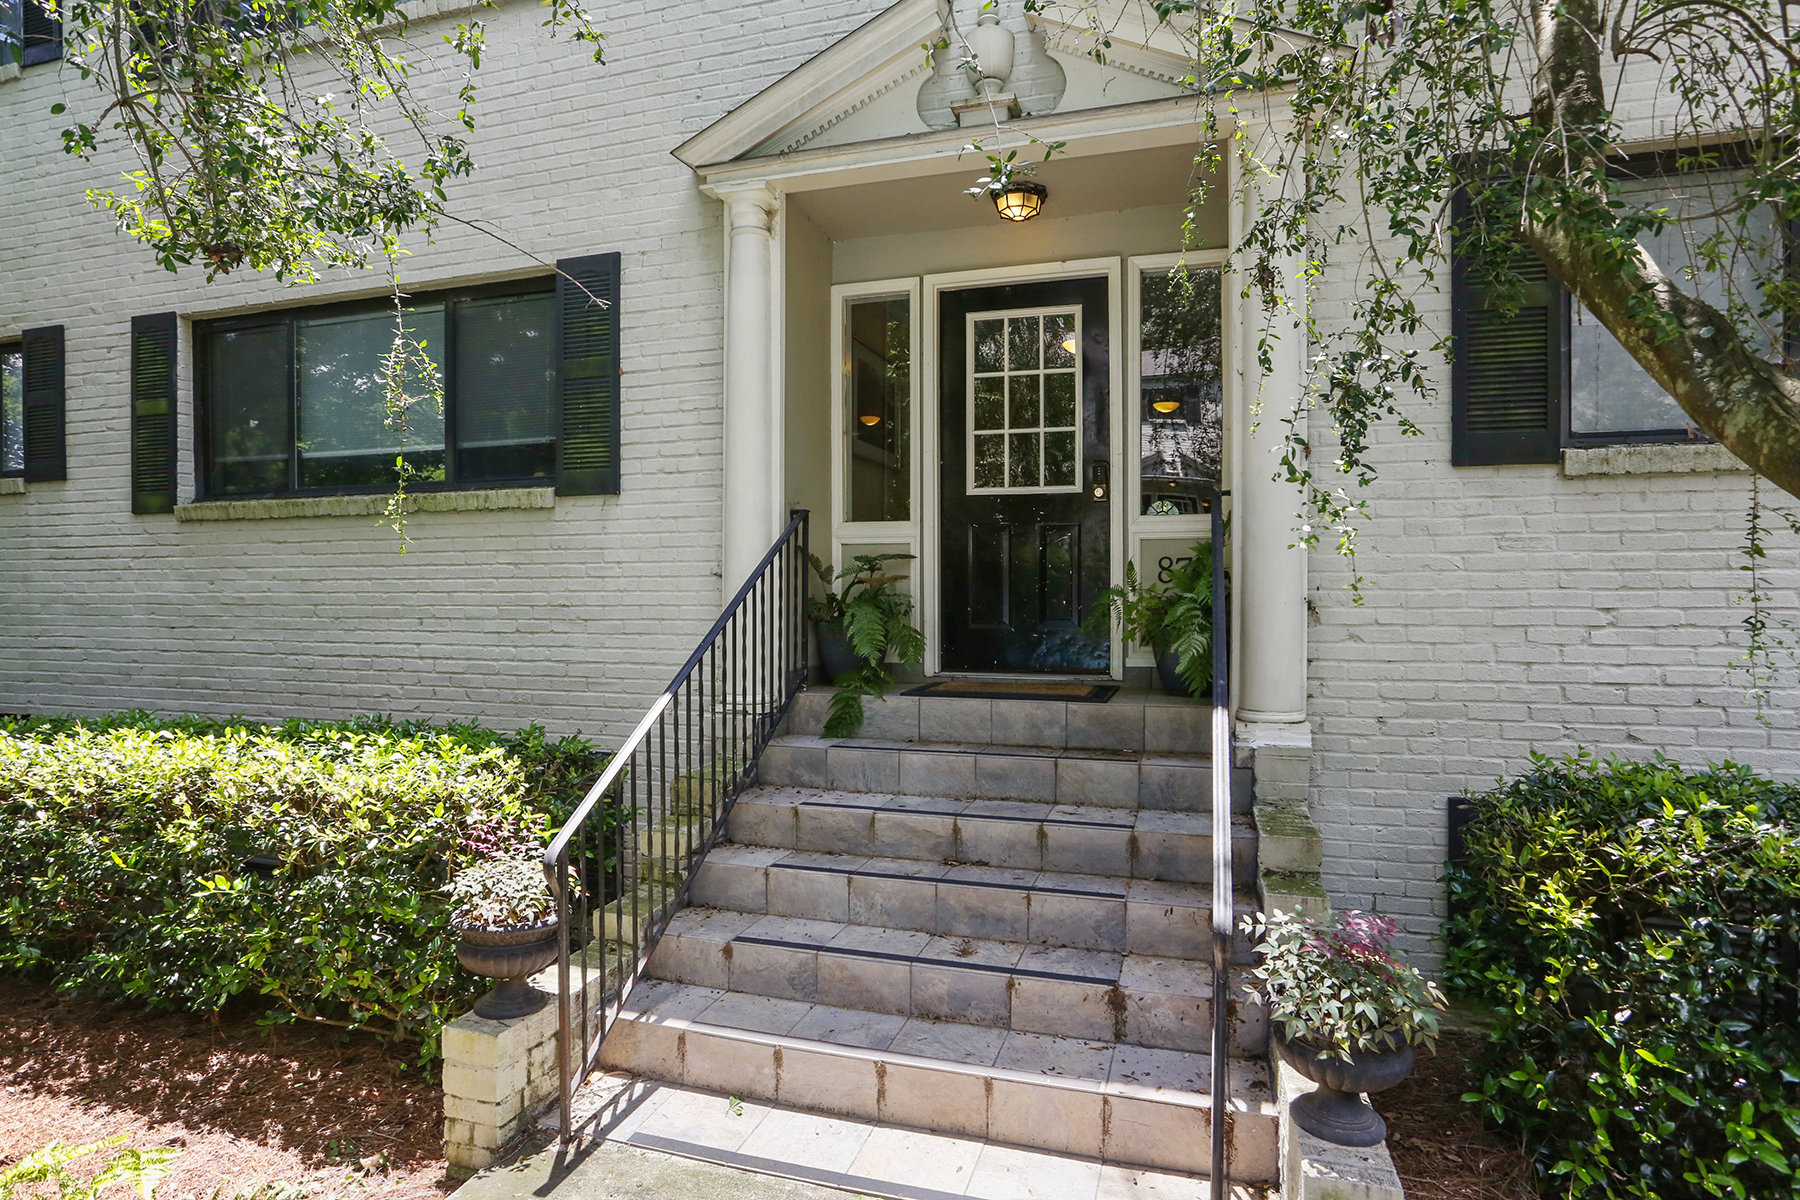 Condominium for Sale at Charming One Bedroom In Piedmont Park District 870 Glendale Terr 12 Atlanta, Georgia 30305 United States